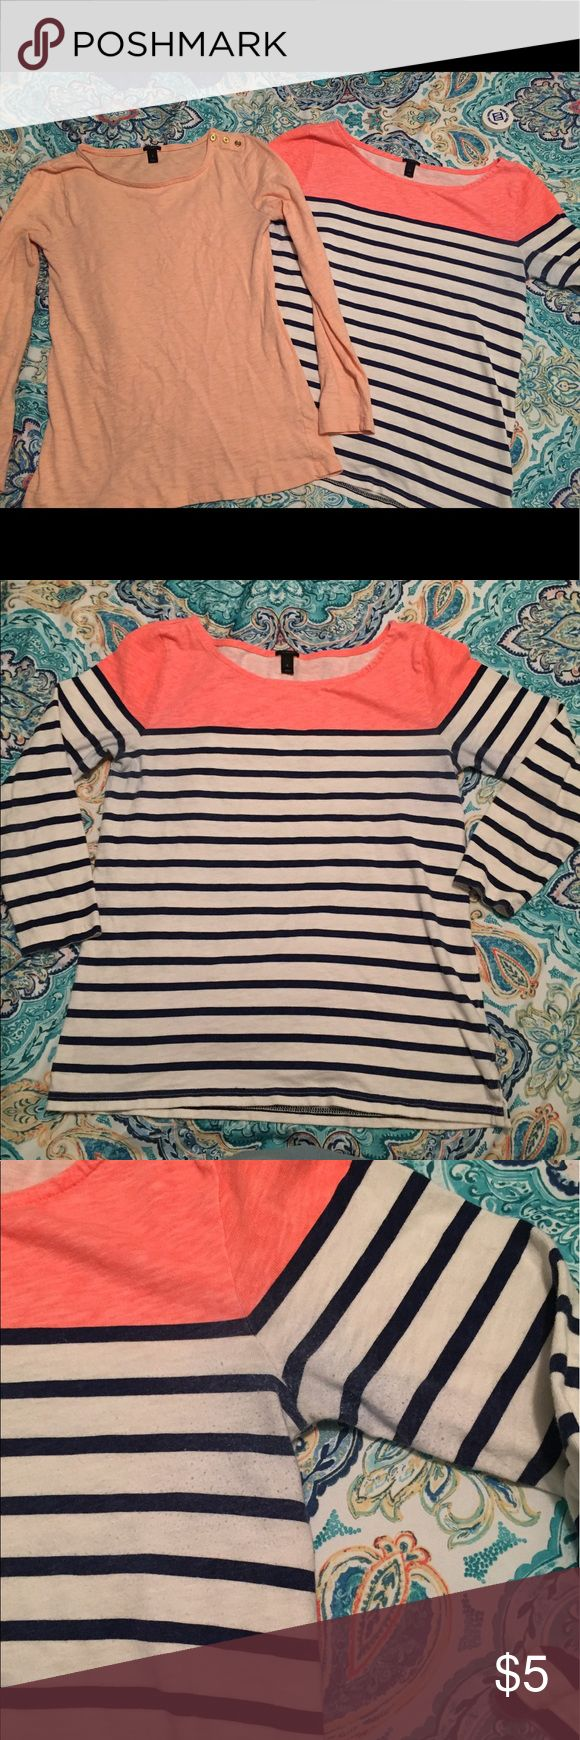 J Crew shirts Two J. crew shirts both size small. The striped one has slight discoloration due to rubbing and the solid one has a small spot on the sleeve. Striped one is quarter length sleeves and the solid is long sleeves. $5 for both J. Crew Tops Tees - Long Sleeve